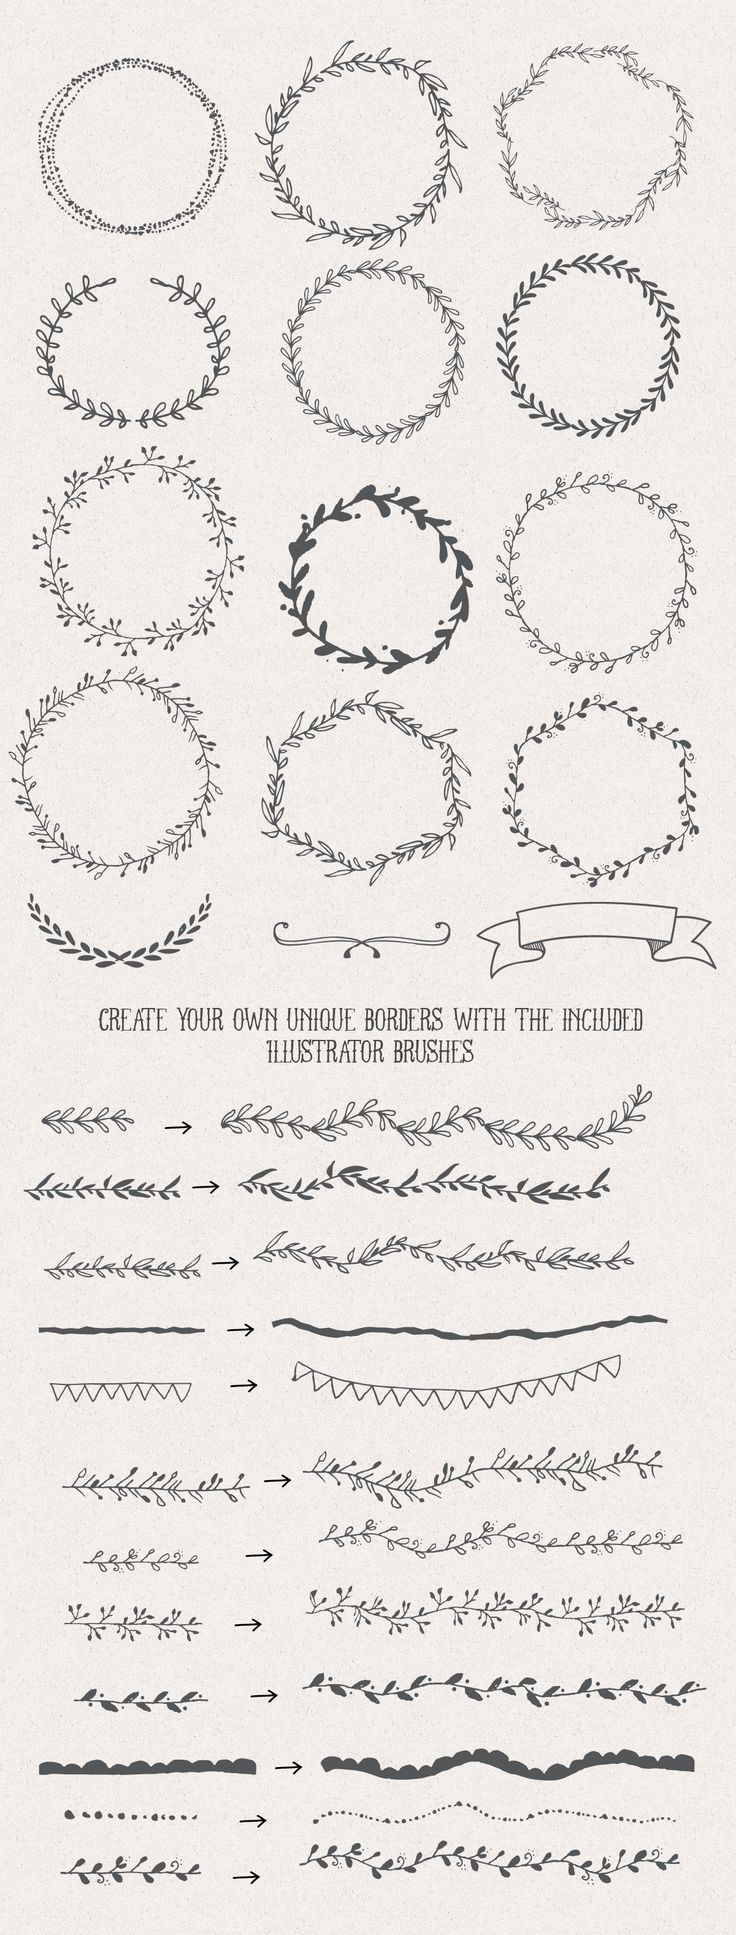 Part of a designers pack - Buy at creative market